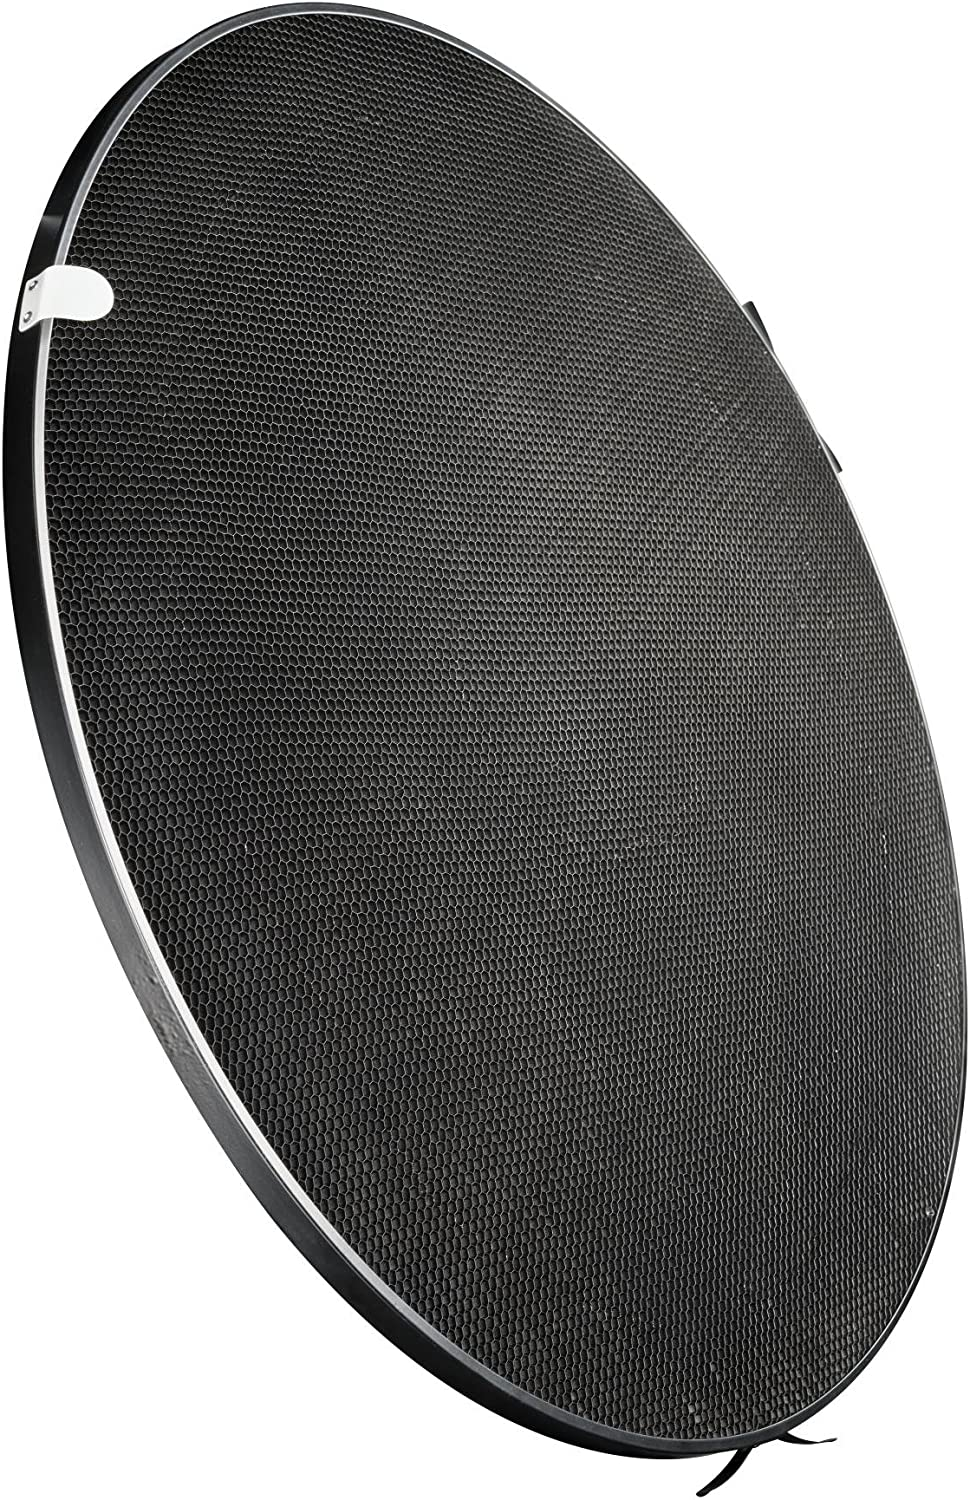 walimex 56cm Honeycomb for Beauty Dish